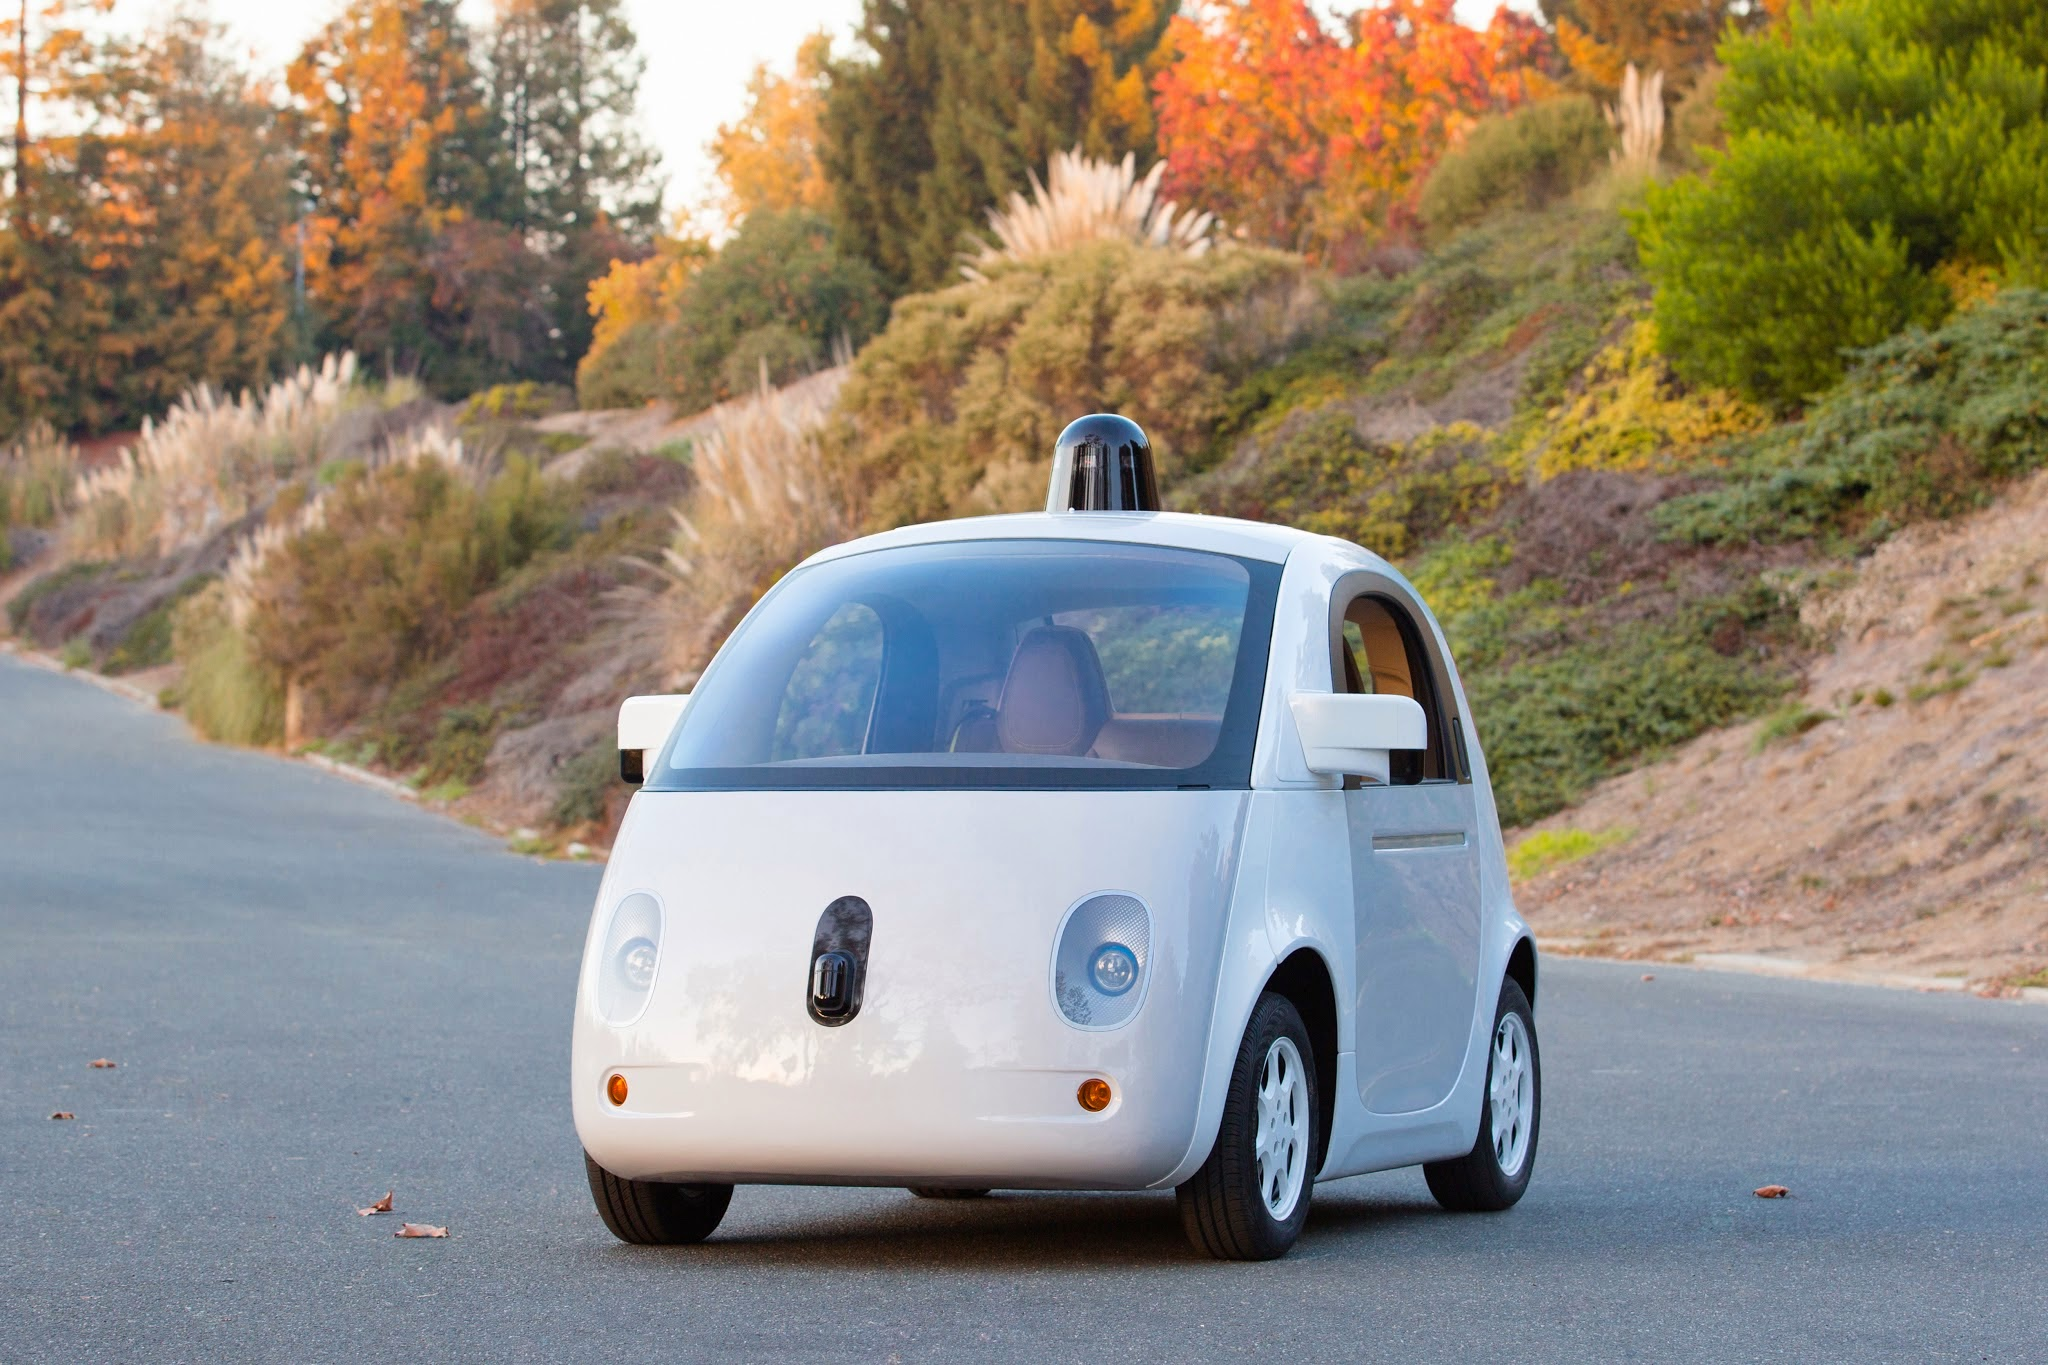 north-cyprus-google-self-drive-car-vehicle-prototype